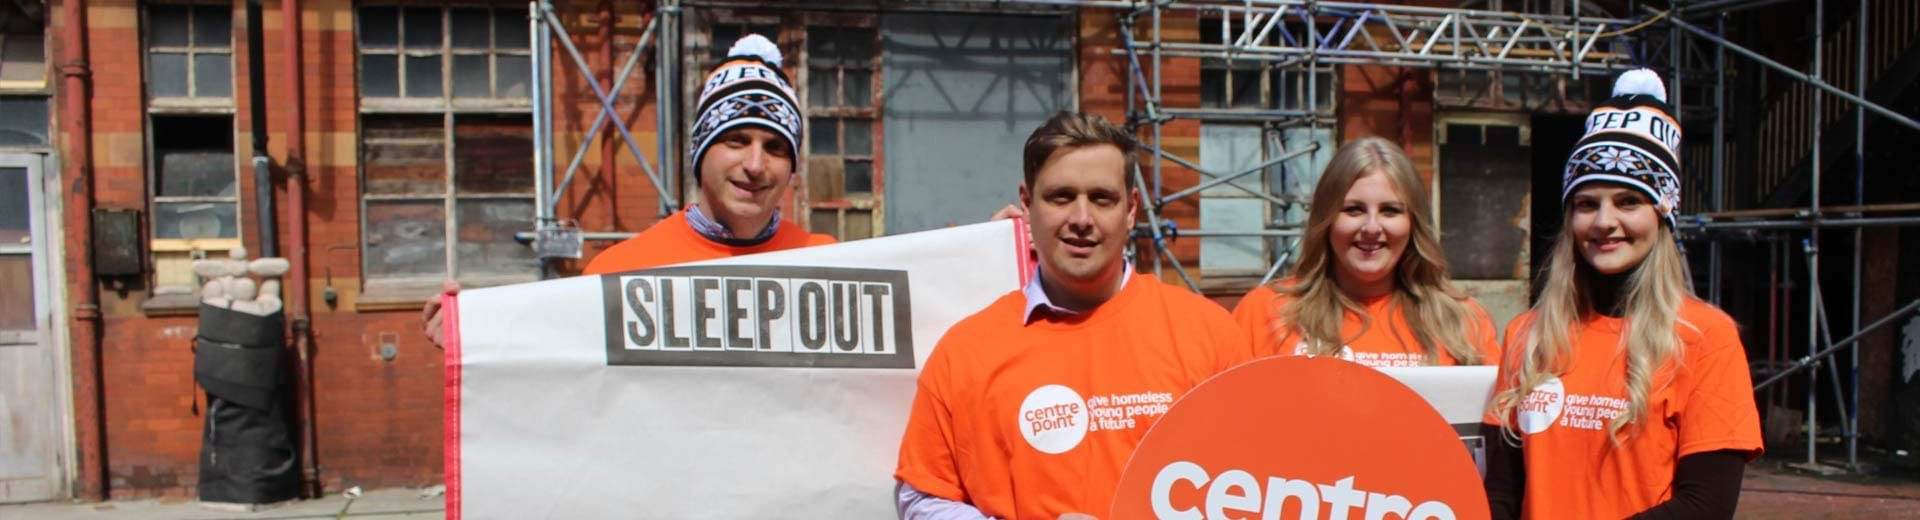 Sleep Out Manchester participants